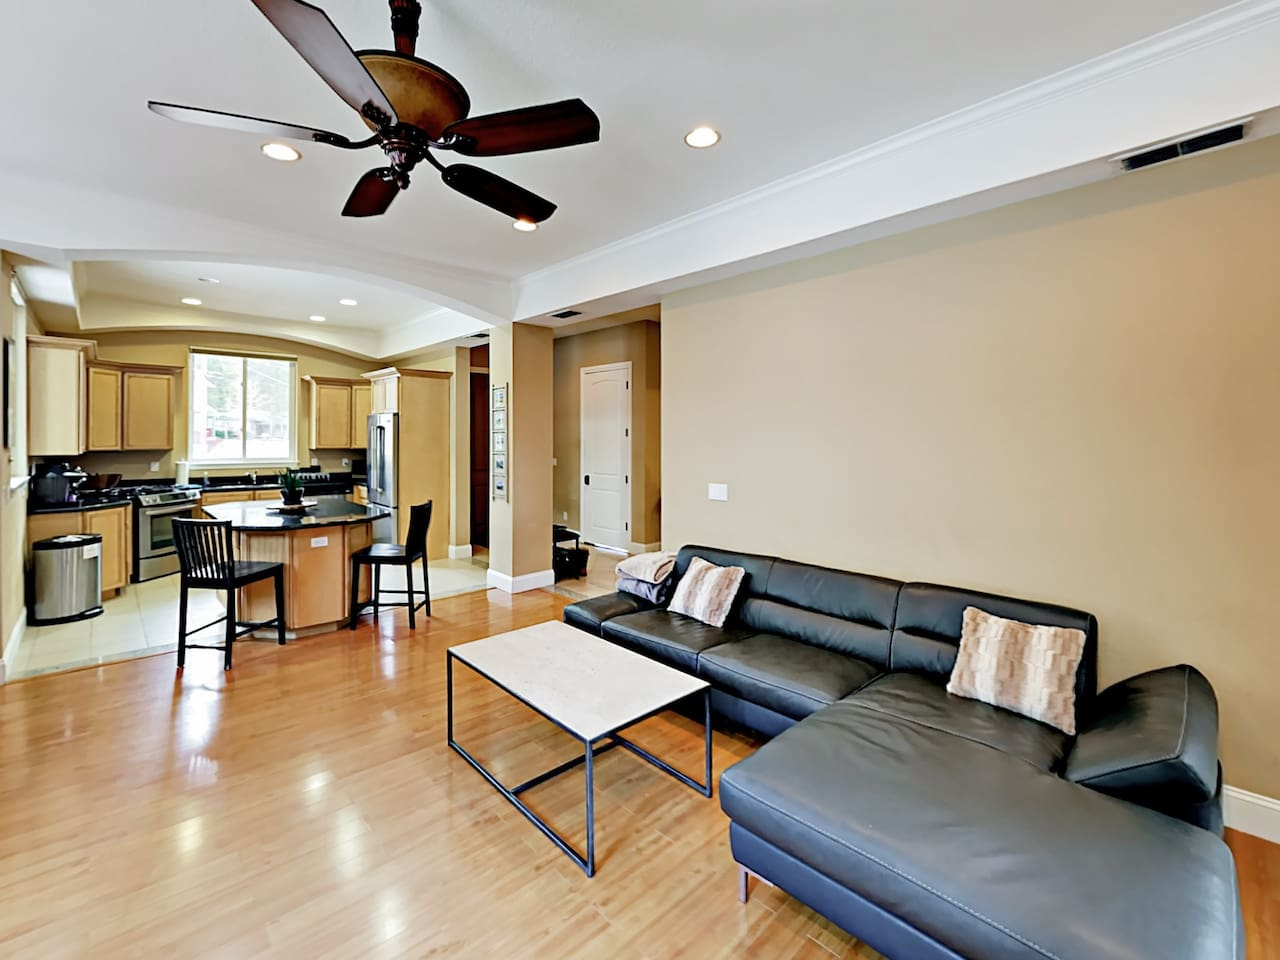 The sunlit living room has seating for 7.